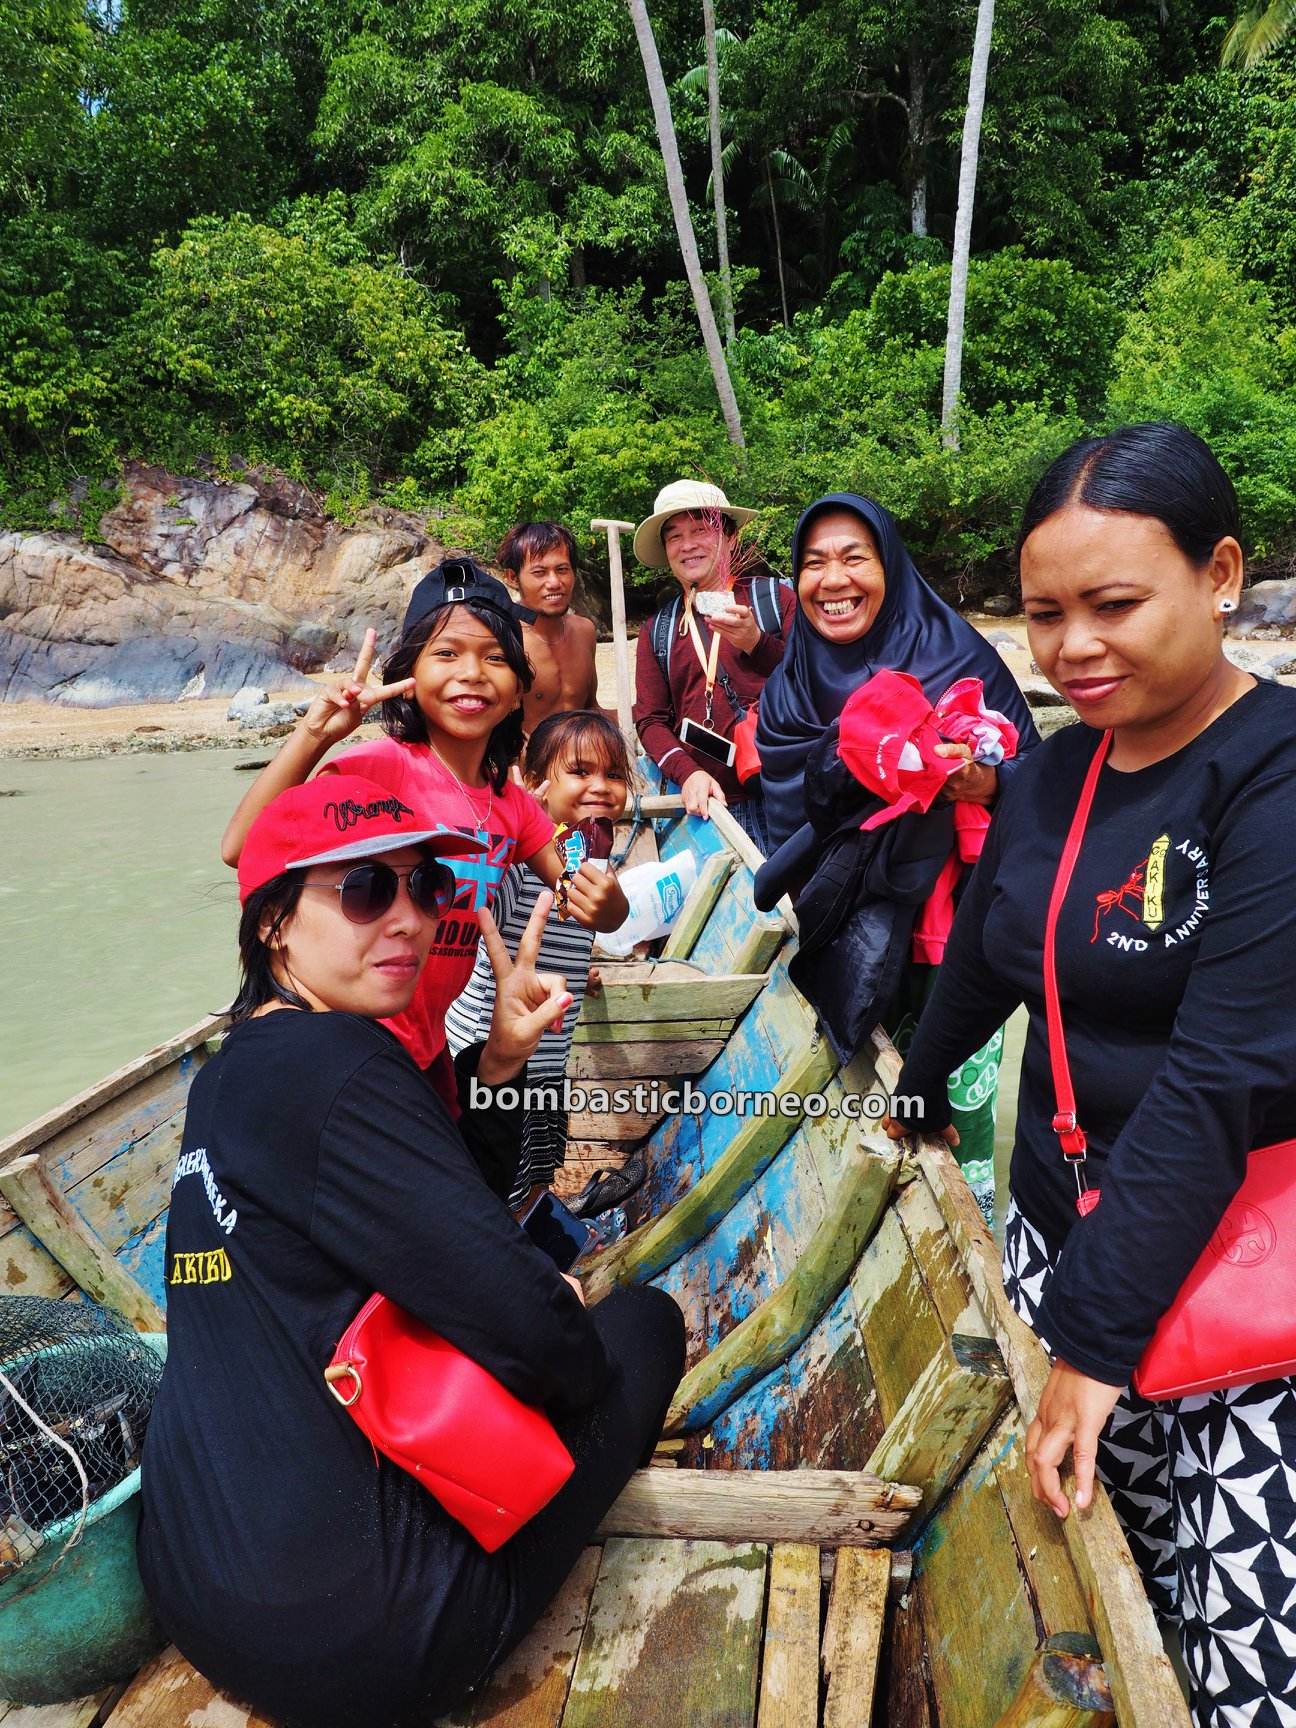 seafood, Kerang, nature, fishing village, Kampung Melayu, Kalimantan Barat, Jawai Laut, wisata alam, Tourism, tourist attraction, backpackers, Borneo, 跨境婆罗洲游踪, 印尼西加里曼丹, 三发马来渔村